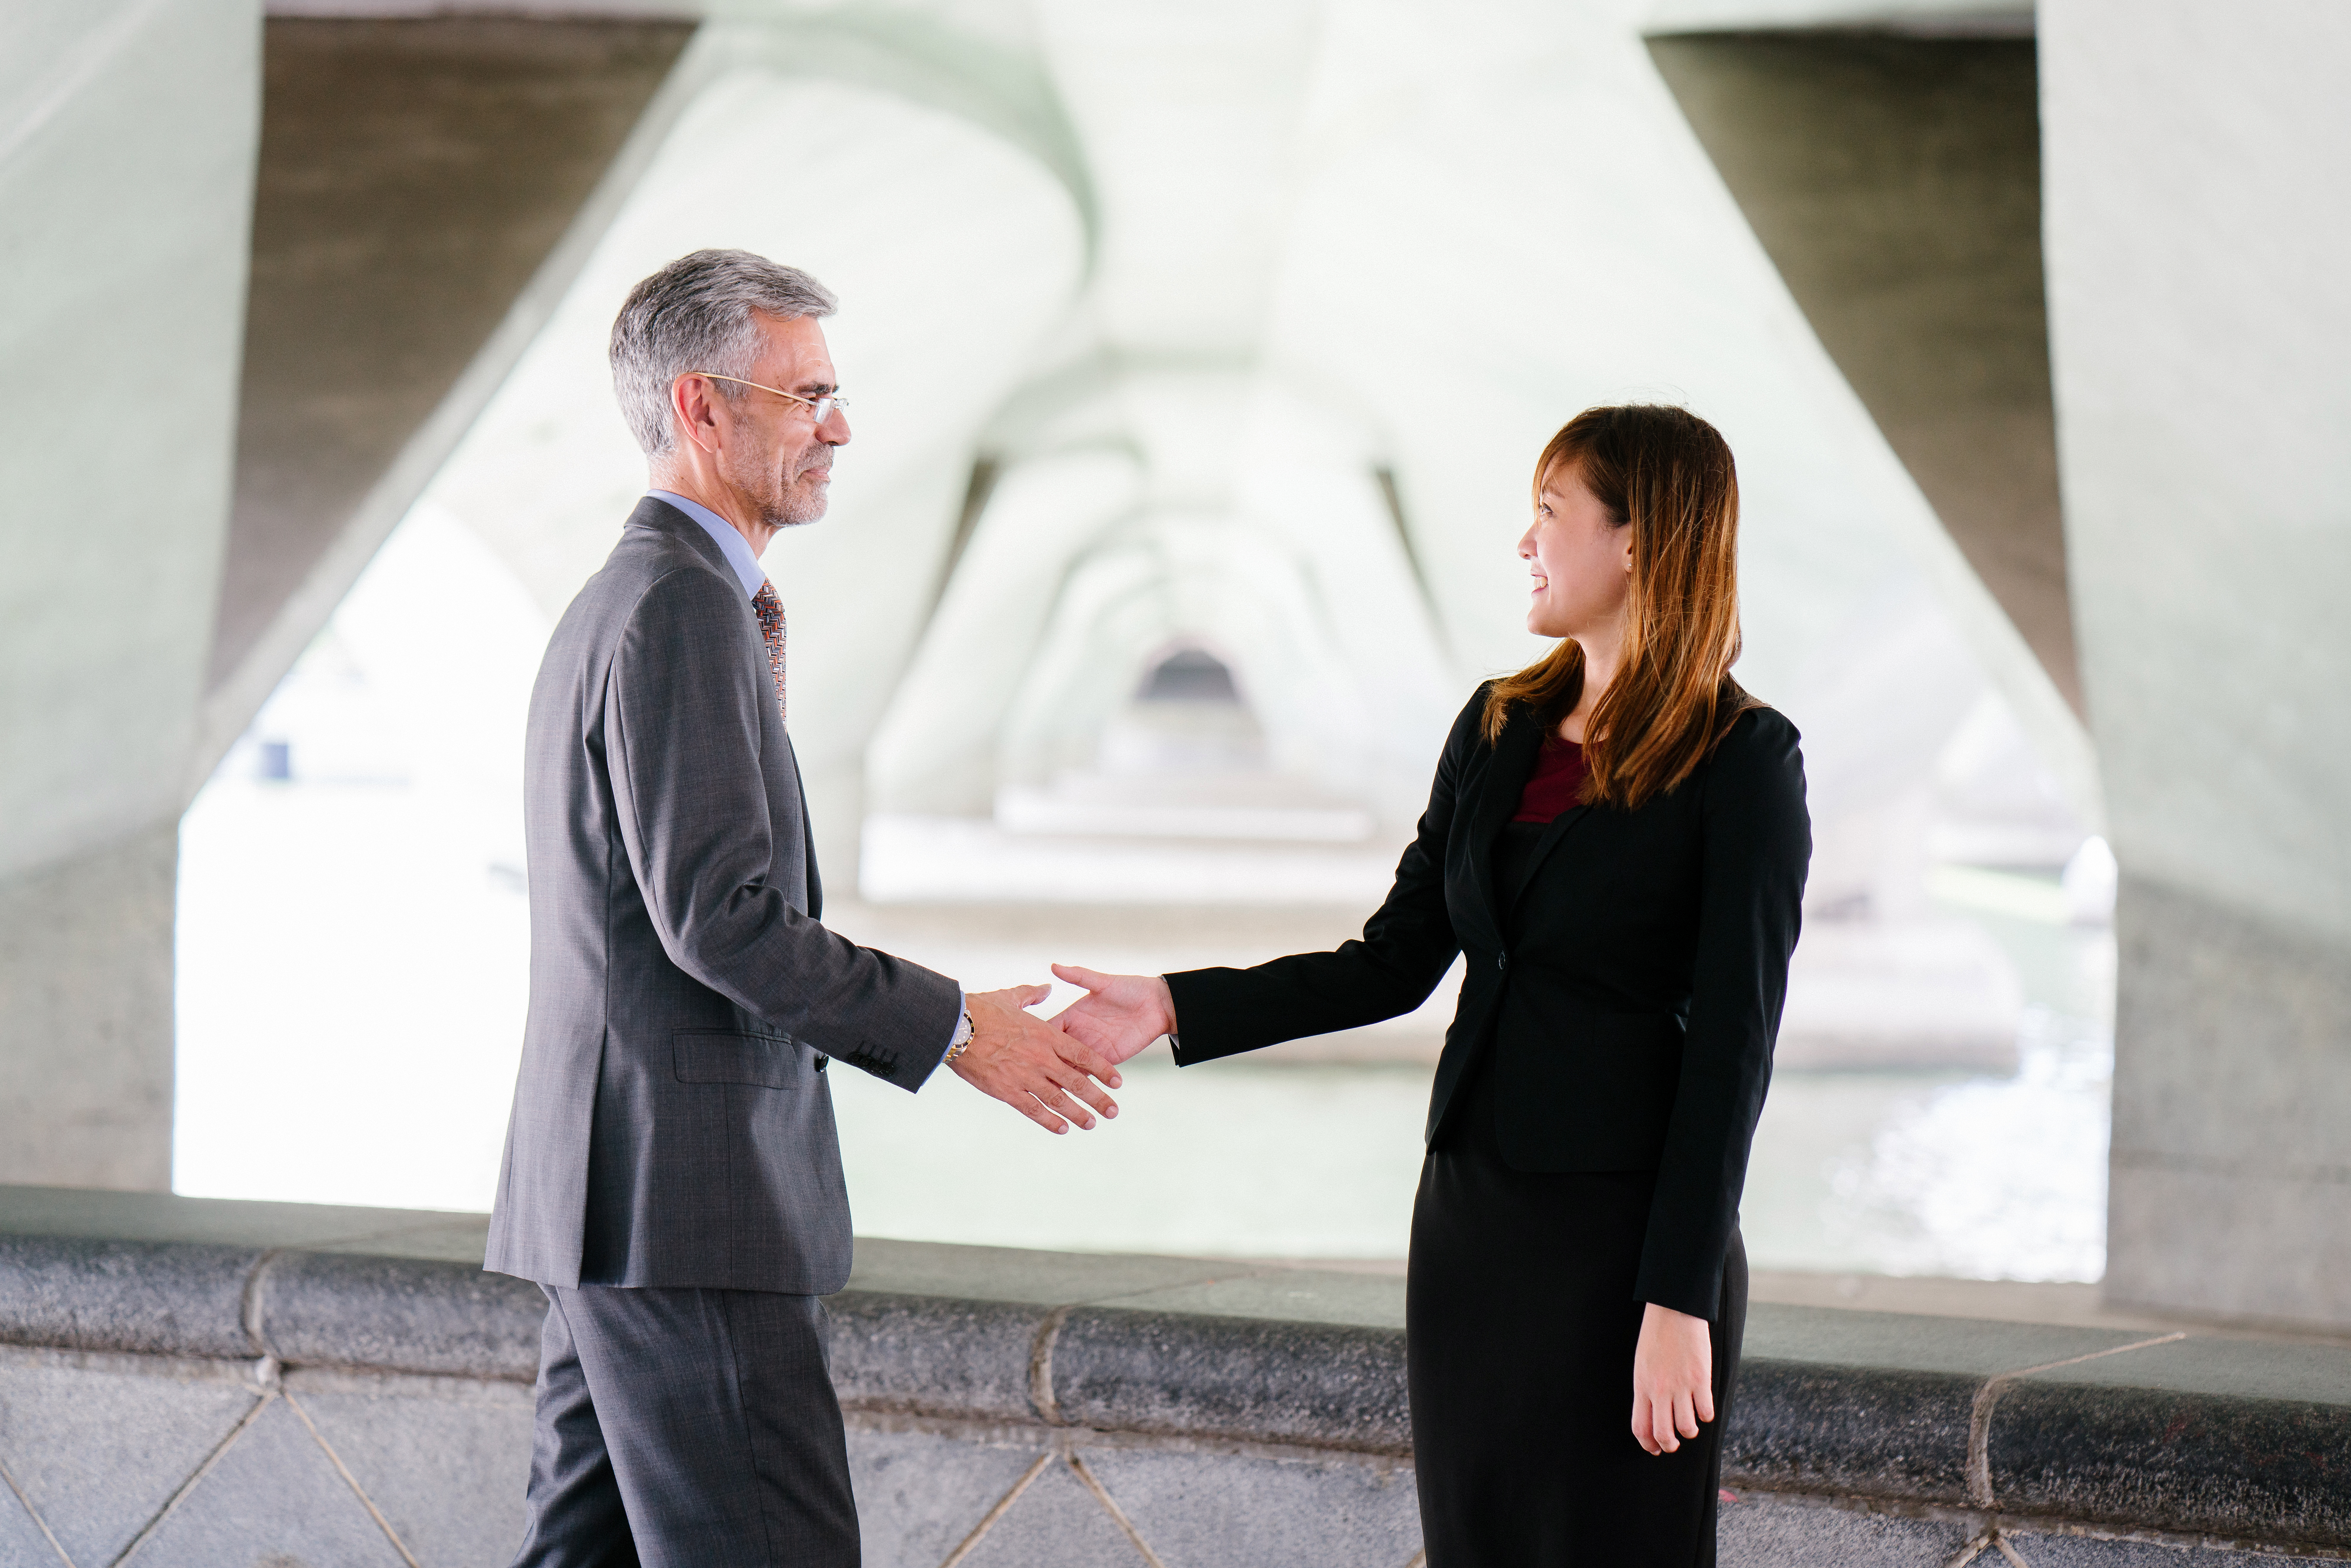 Canva - Man and Woman Shaking Hand in Focus Photography